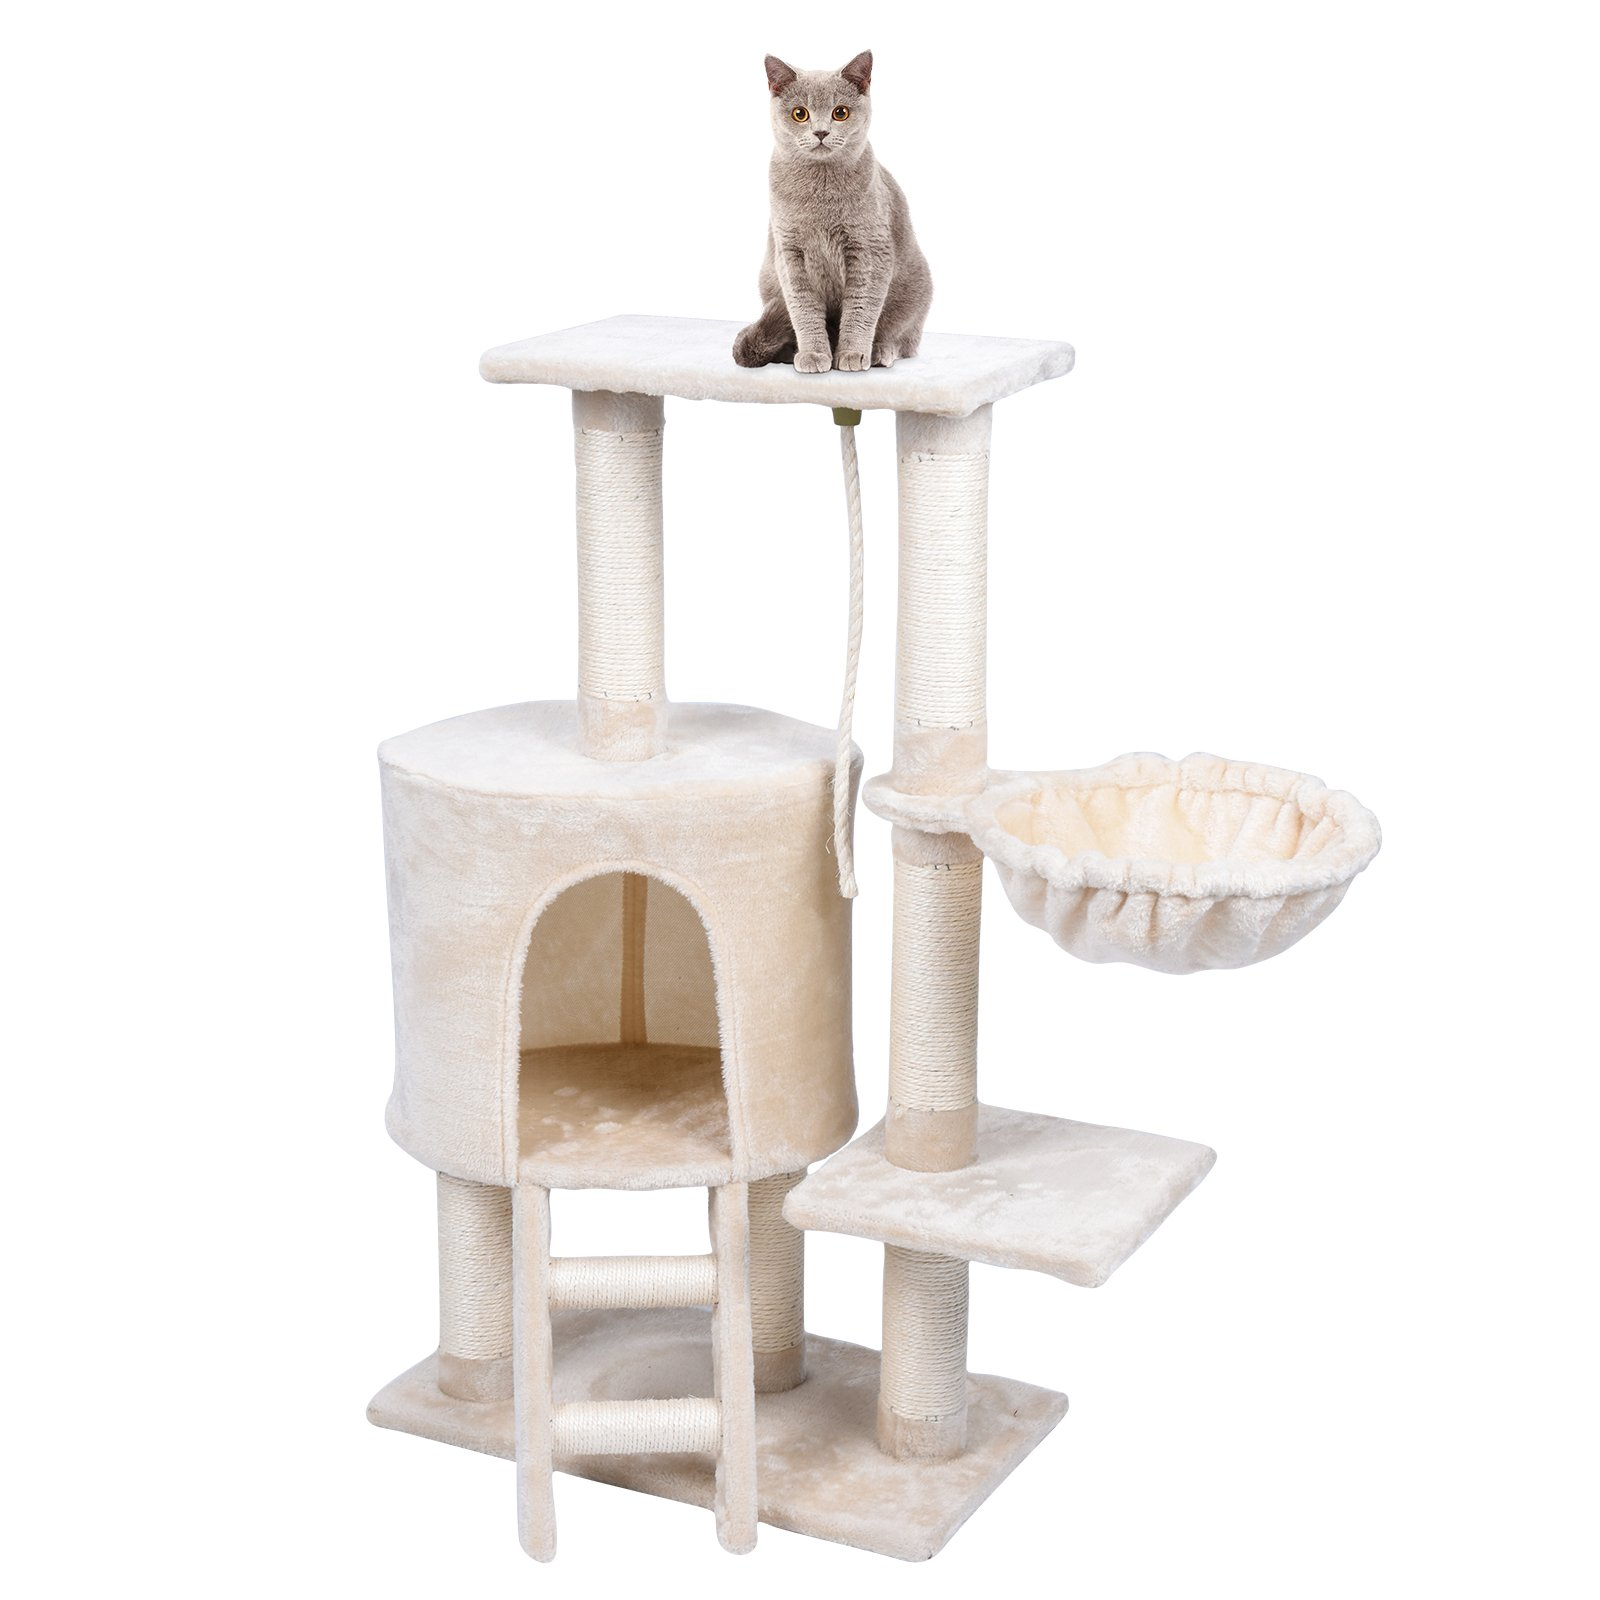 WELLHOME Cat Tree With House Condo Tower Pet Scratching Posts Unique Kitten Perch Furniture Natural Sisal Kitty Climbing Toys Activity Tree With Playhouse In The Corner Window Perches (Beige)